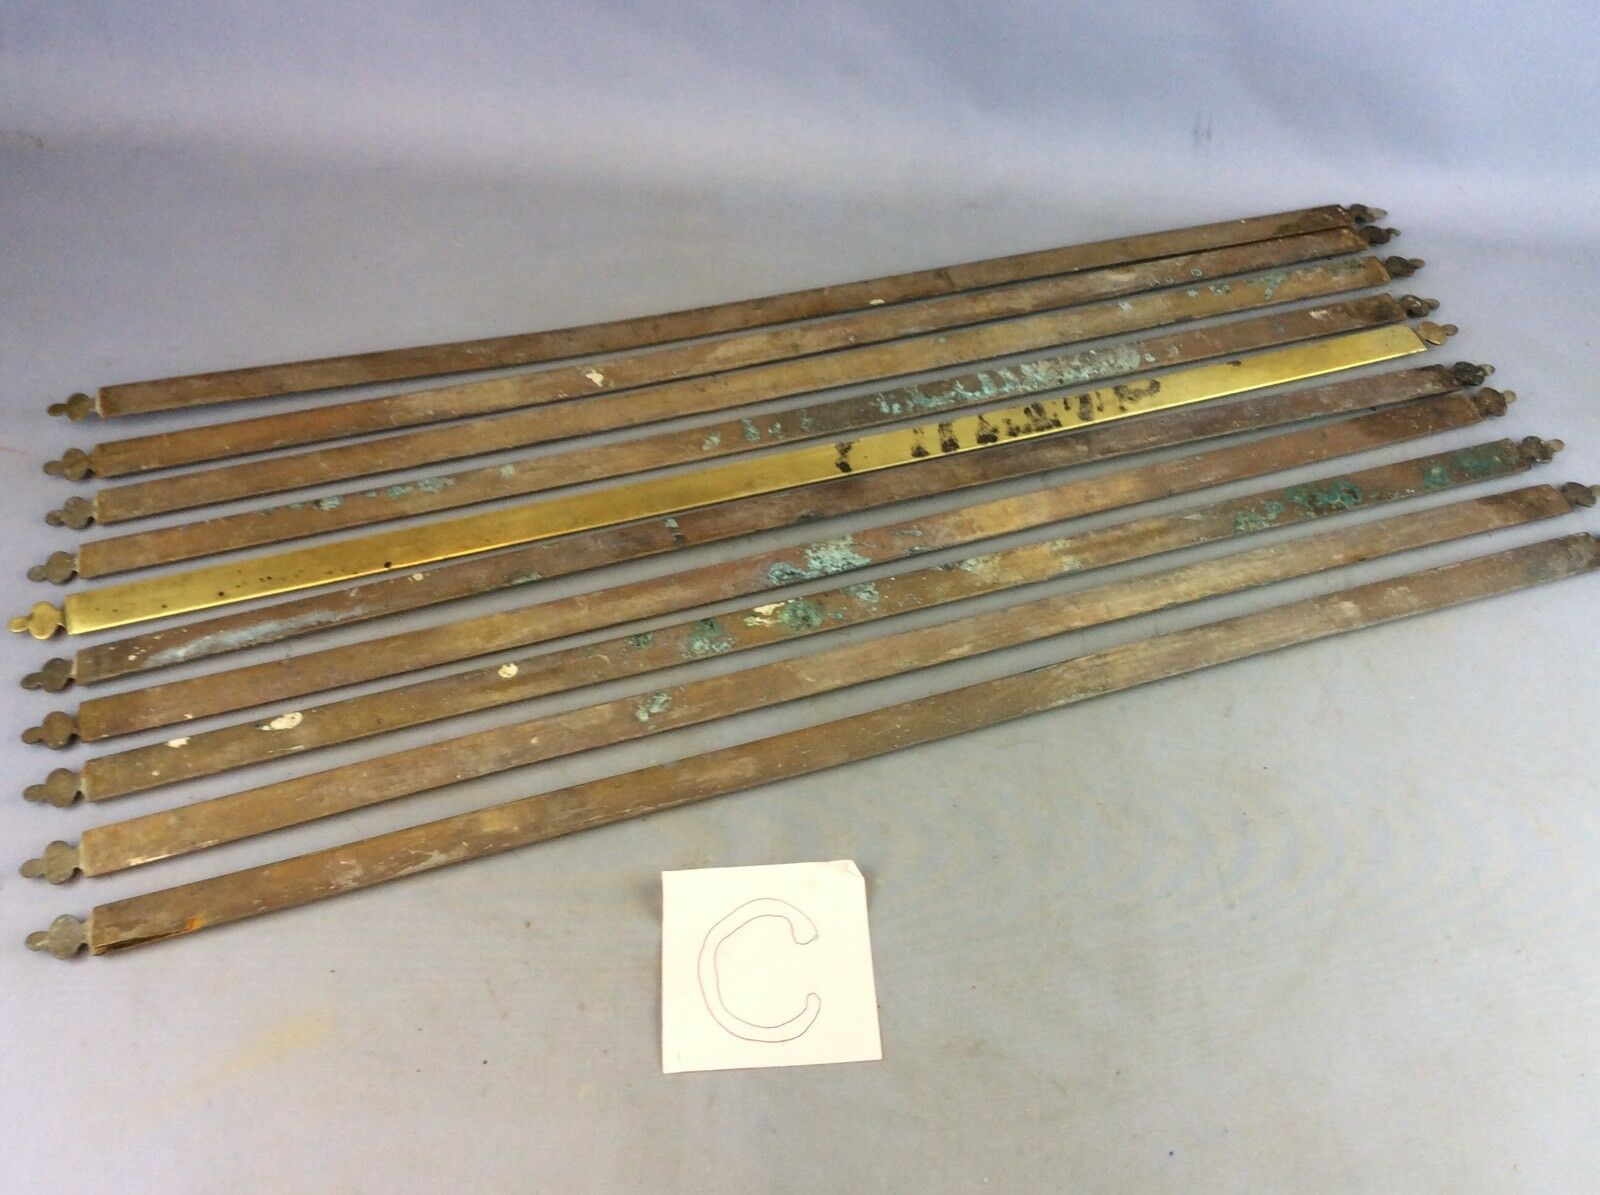 Charmant Set Of X 10 Reclaimed Edwardian Brass Stair Rods Fleur De Lis Trefoil 1 Of  11Only 1 Available See More